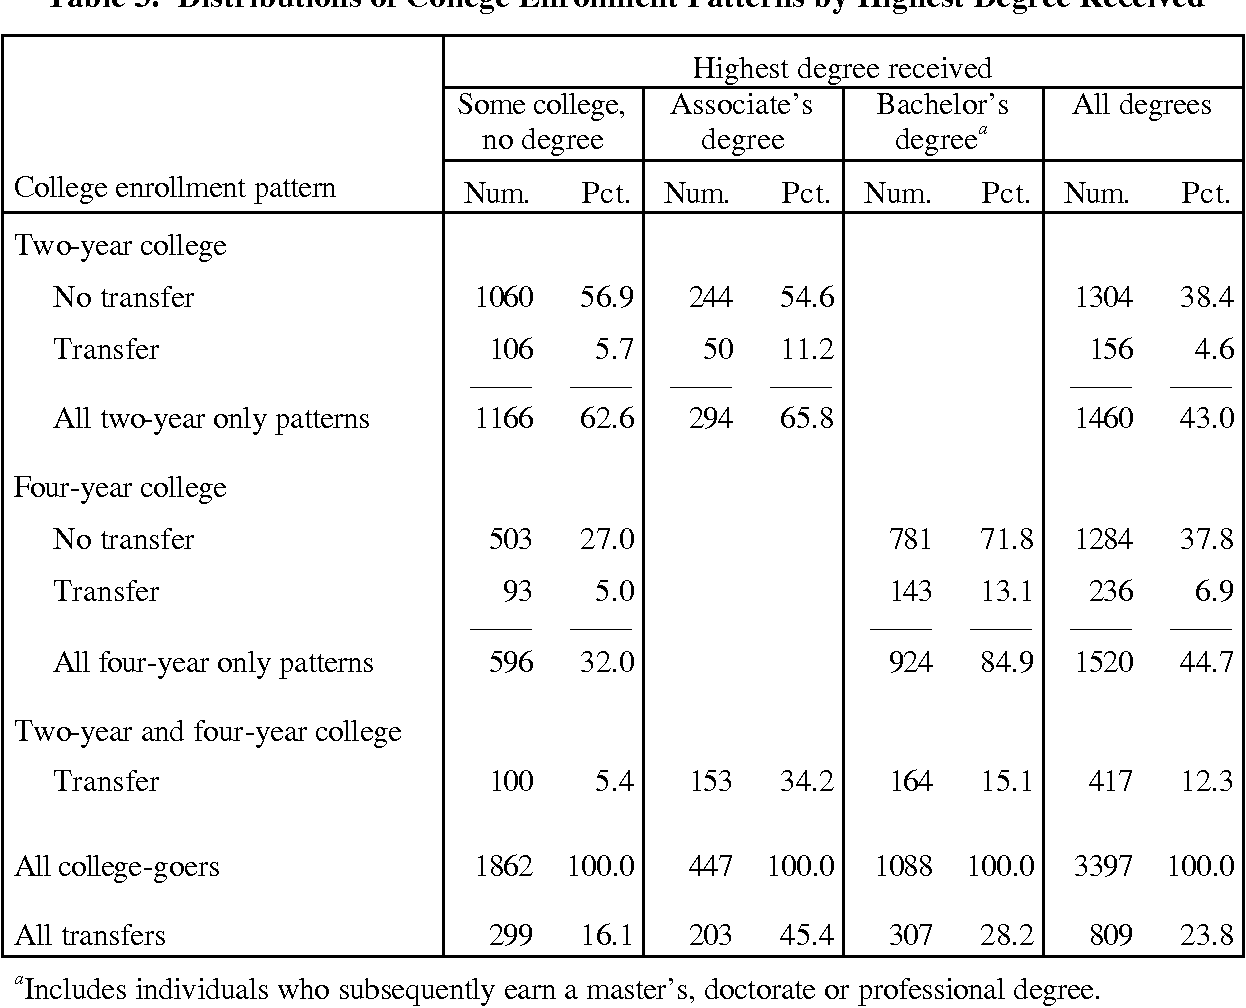 Table 3: Distributions of College Enrollment Patterns by Highest Degree Received